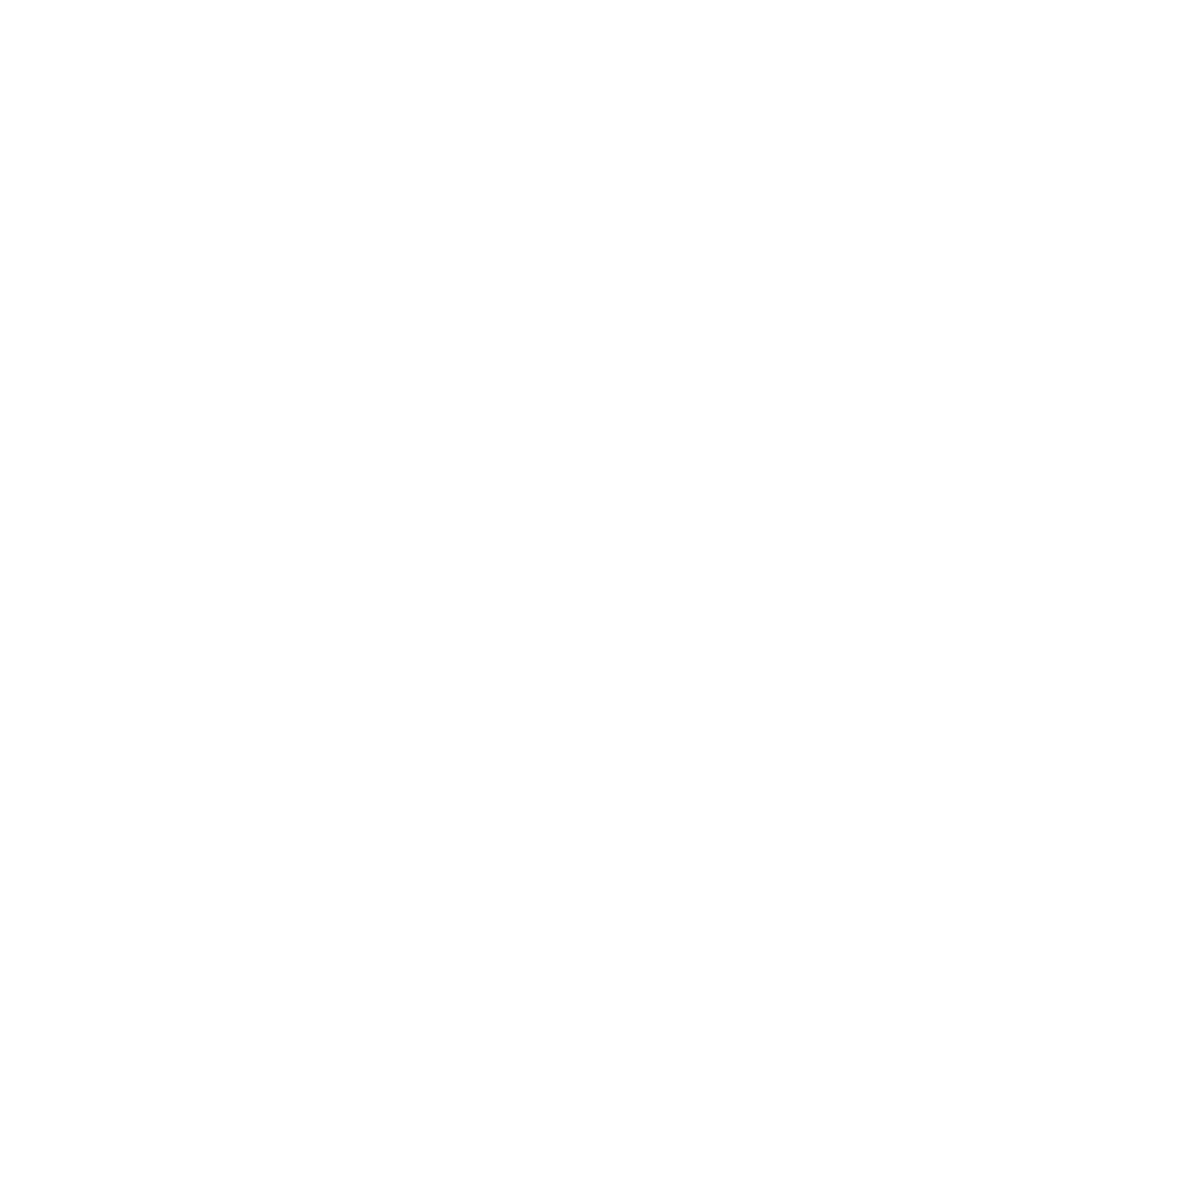 egypt guide tours